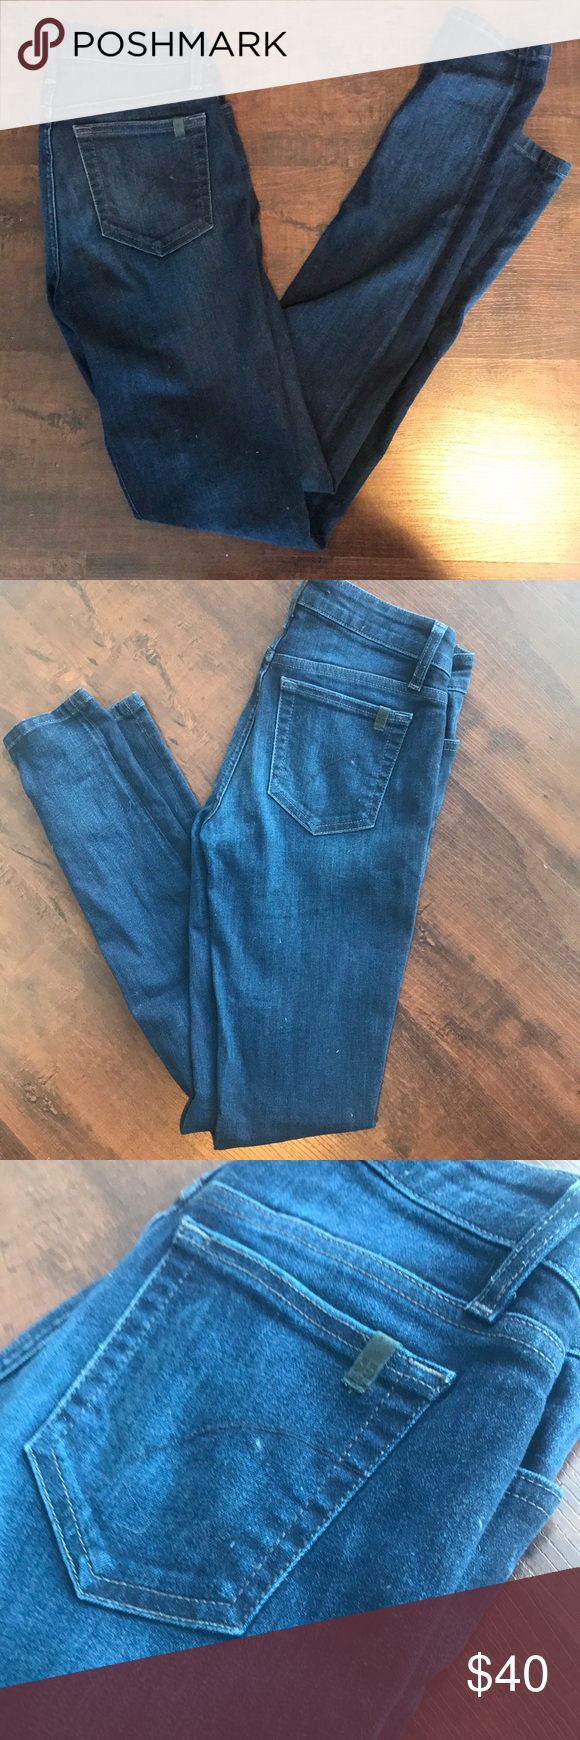 Joe Jeans Dark Washed Size W 27 Joes Jeans Jeans Clothes For Sale